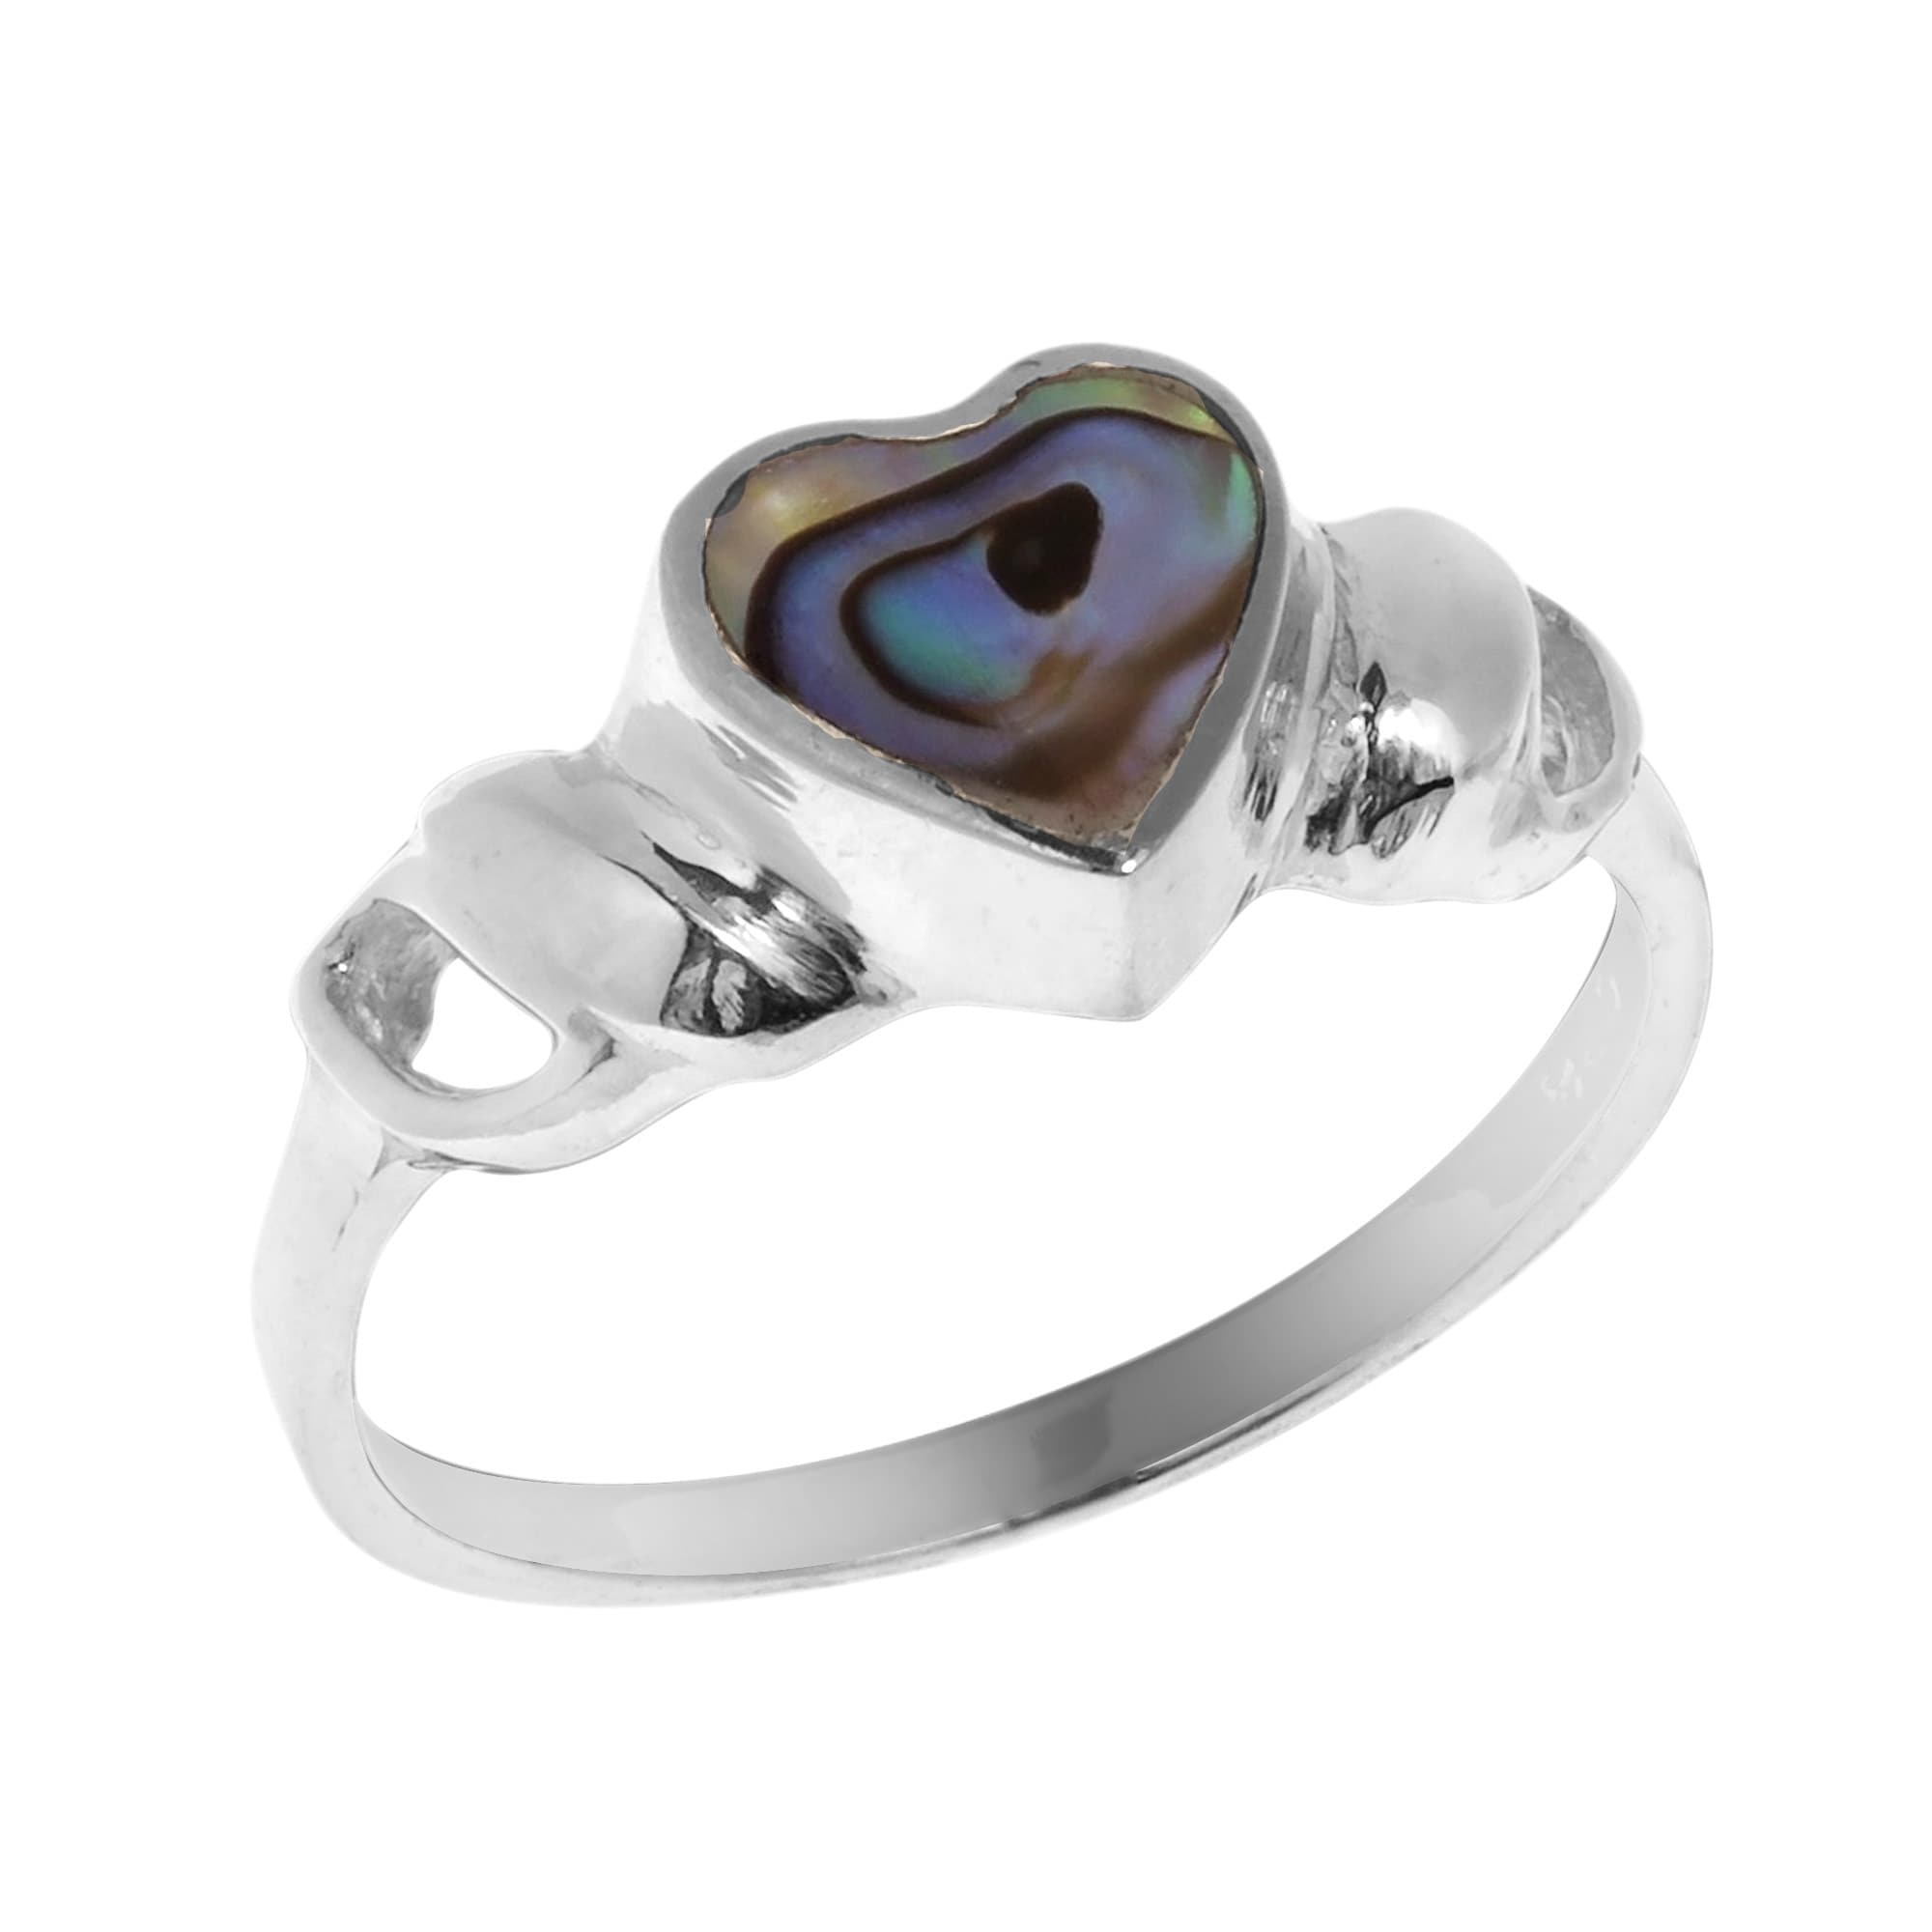 ring for wedding the magazineboomer engagement abalone jewelry hers ti by boomer men and style store his jr magazine bands johan rust handmade s rings